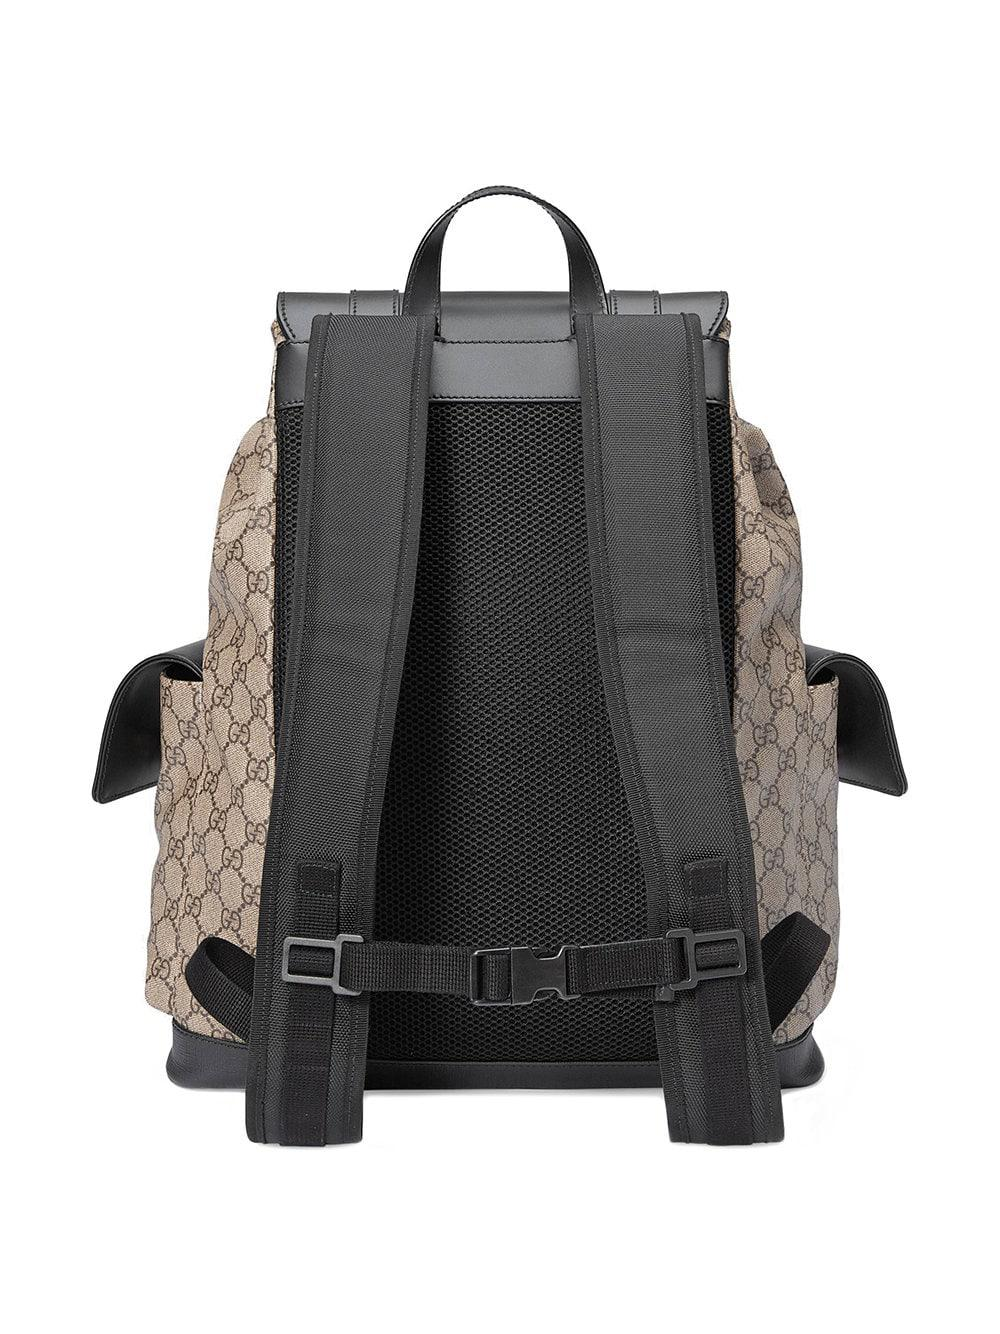 Gucci - Brown Soft GG Supreme Backpack for Men - Lyst. View fullscreen 3a598dfe1f